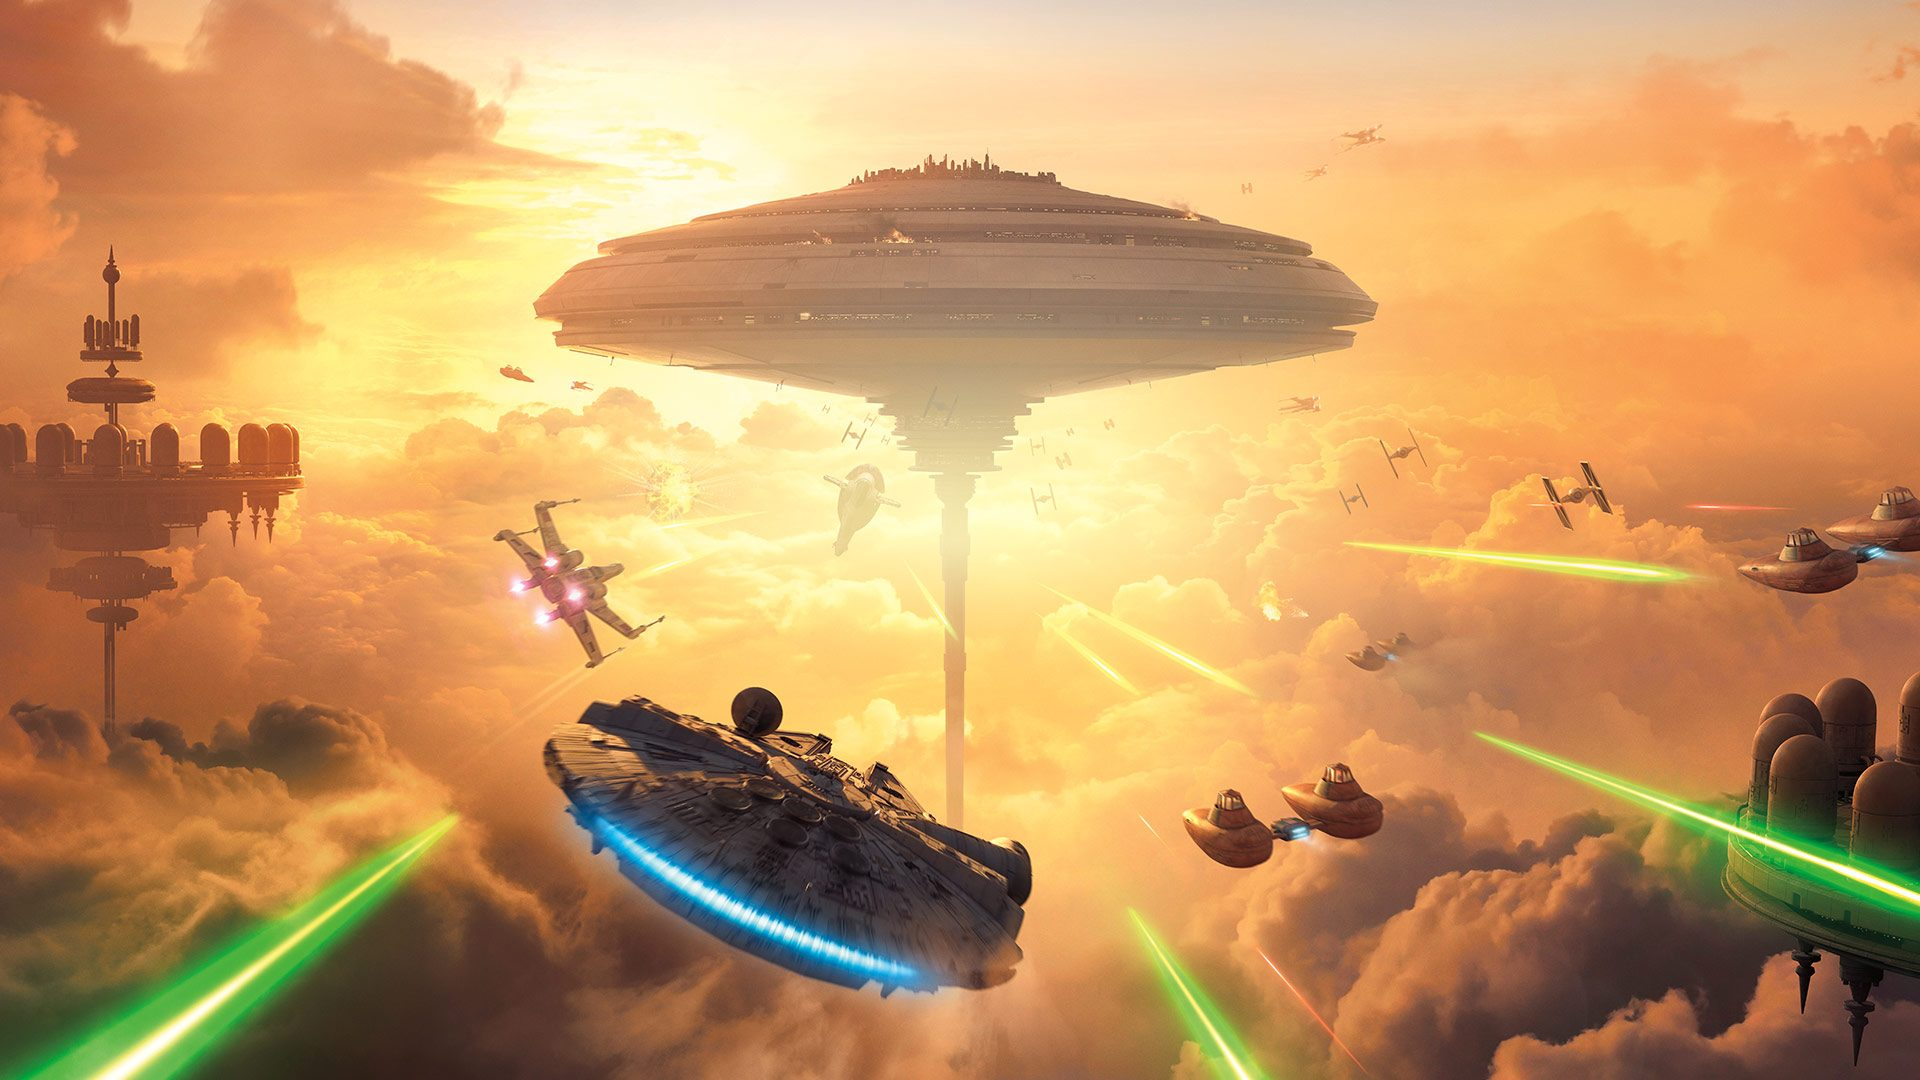 Bespin free trial goes live next week.